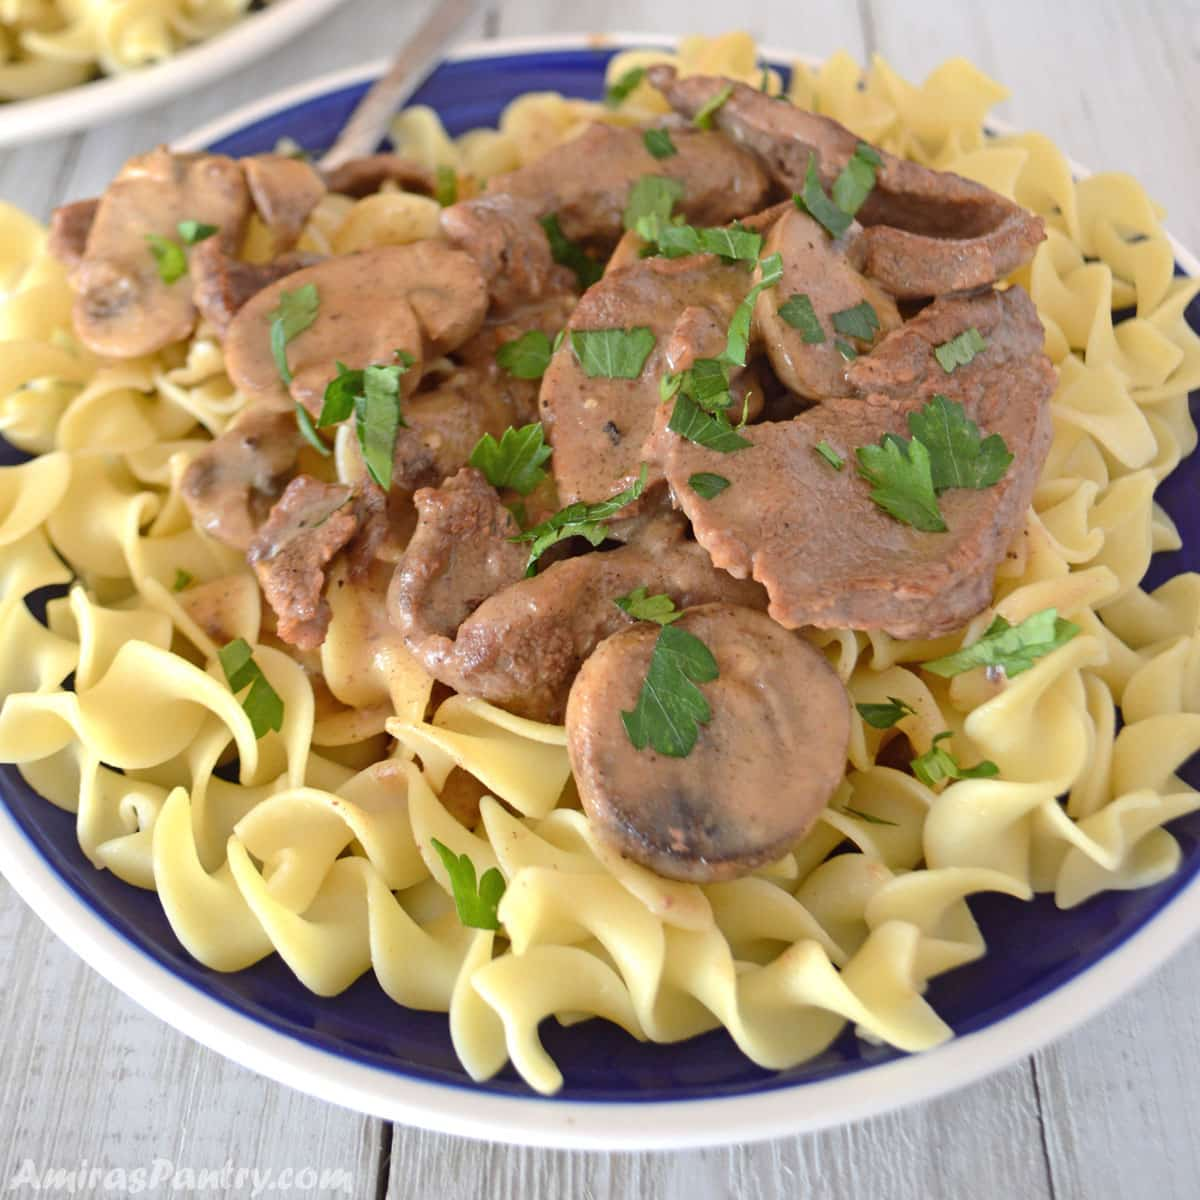 A blur plate filled with beef stroganoff on egg noodles.